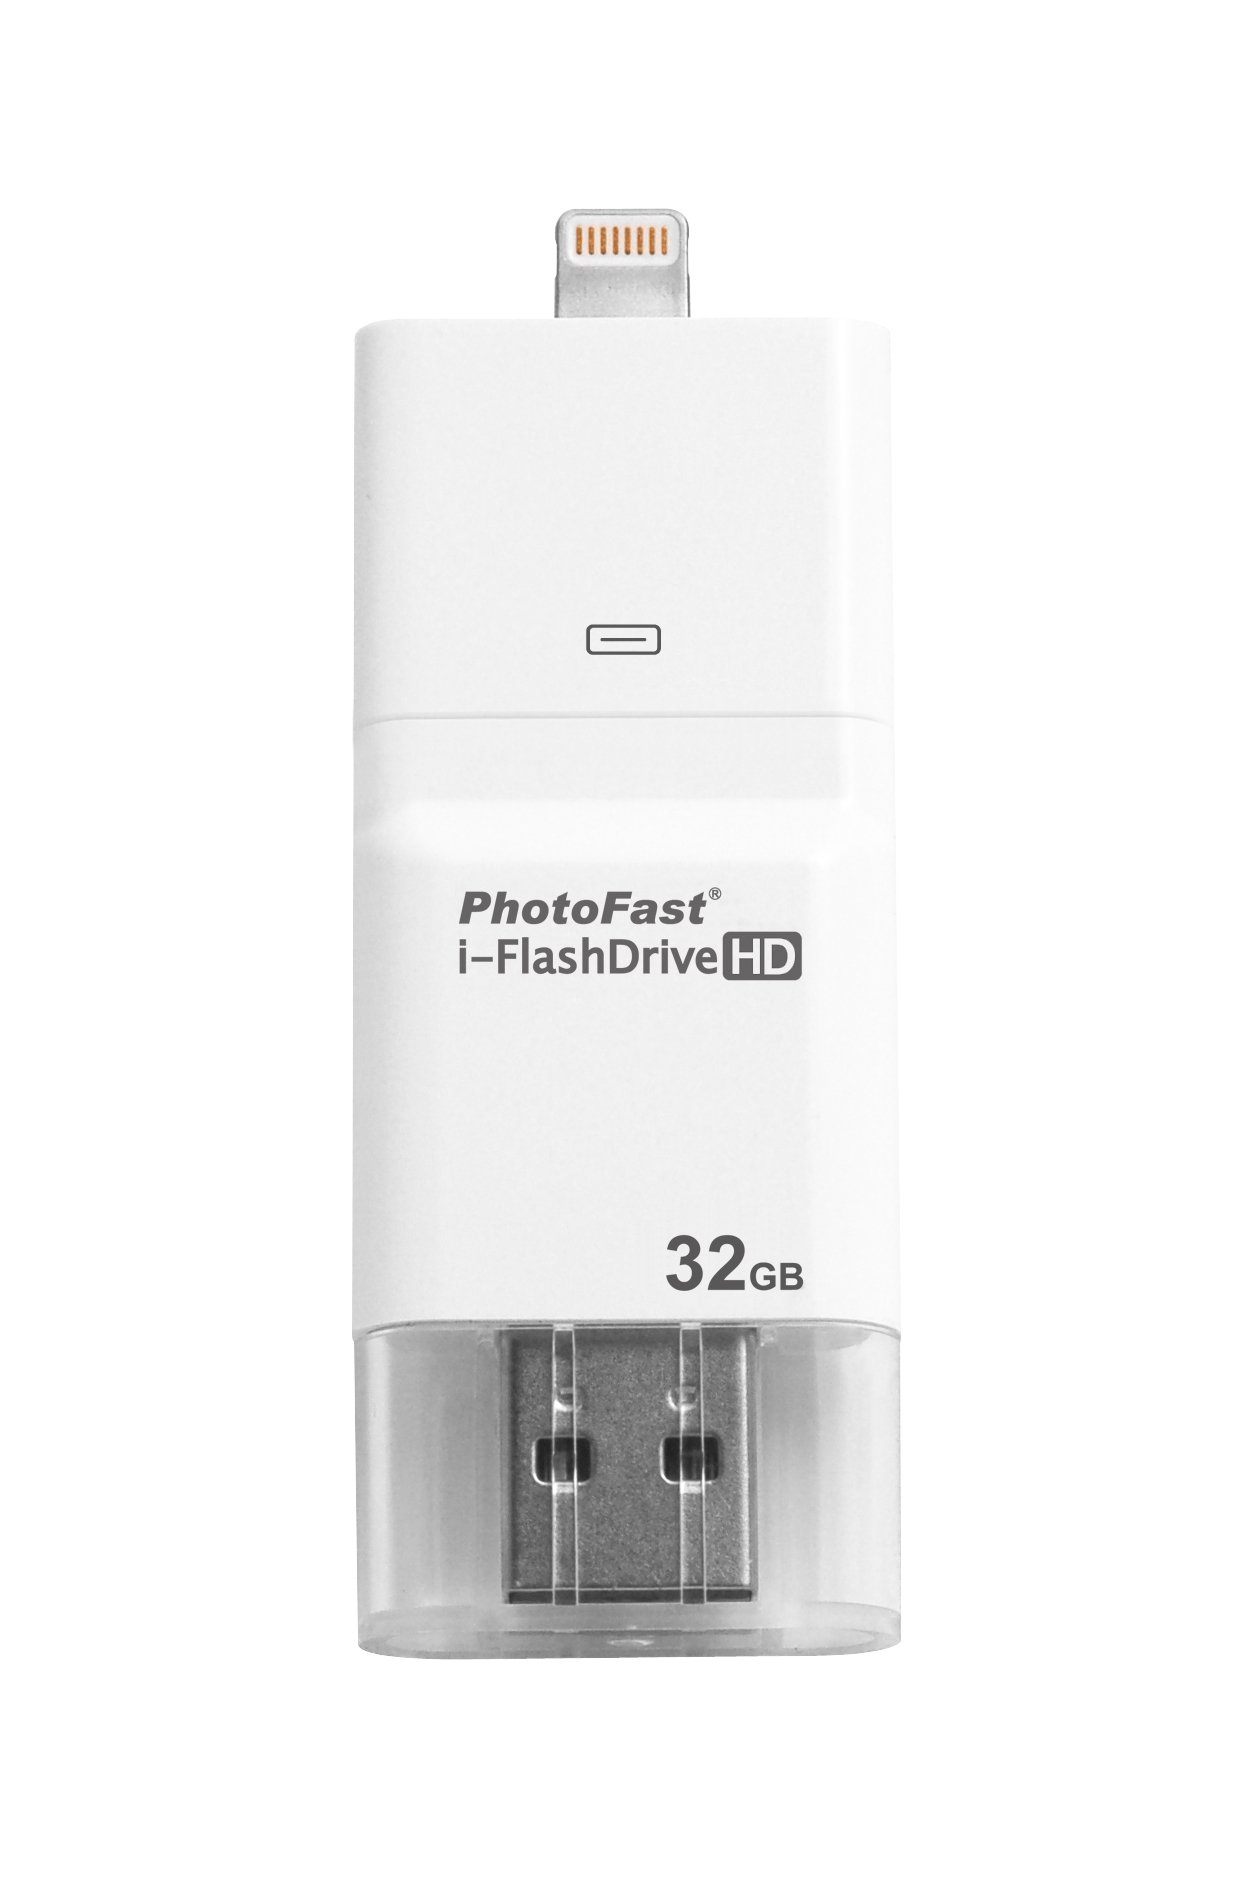 i-FlashDrive HD 32GB with dual storage between iOS and Mac/PC - Apple licensed for iPod/iPhone/iPad (Lightning/30-pin)